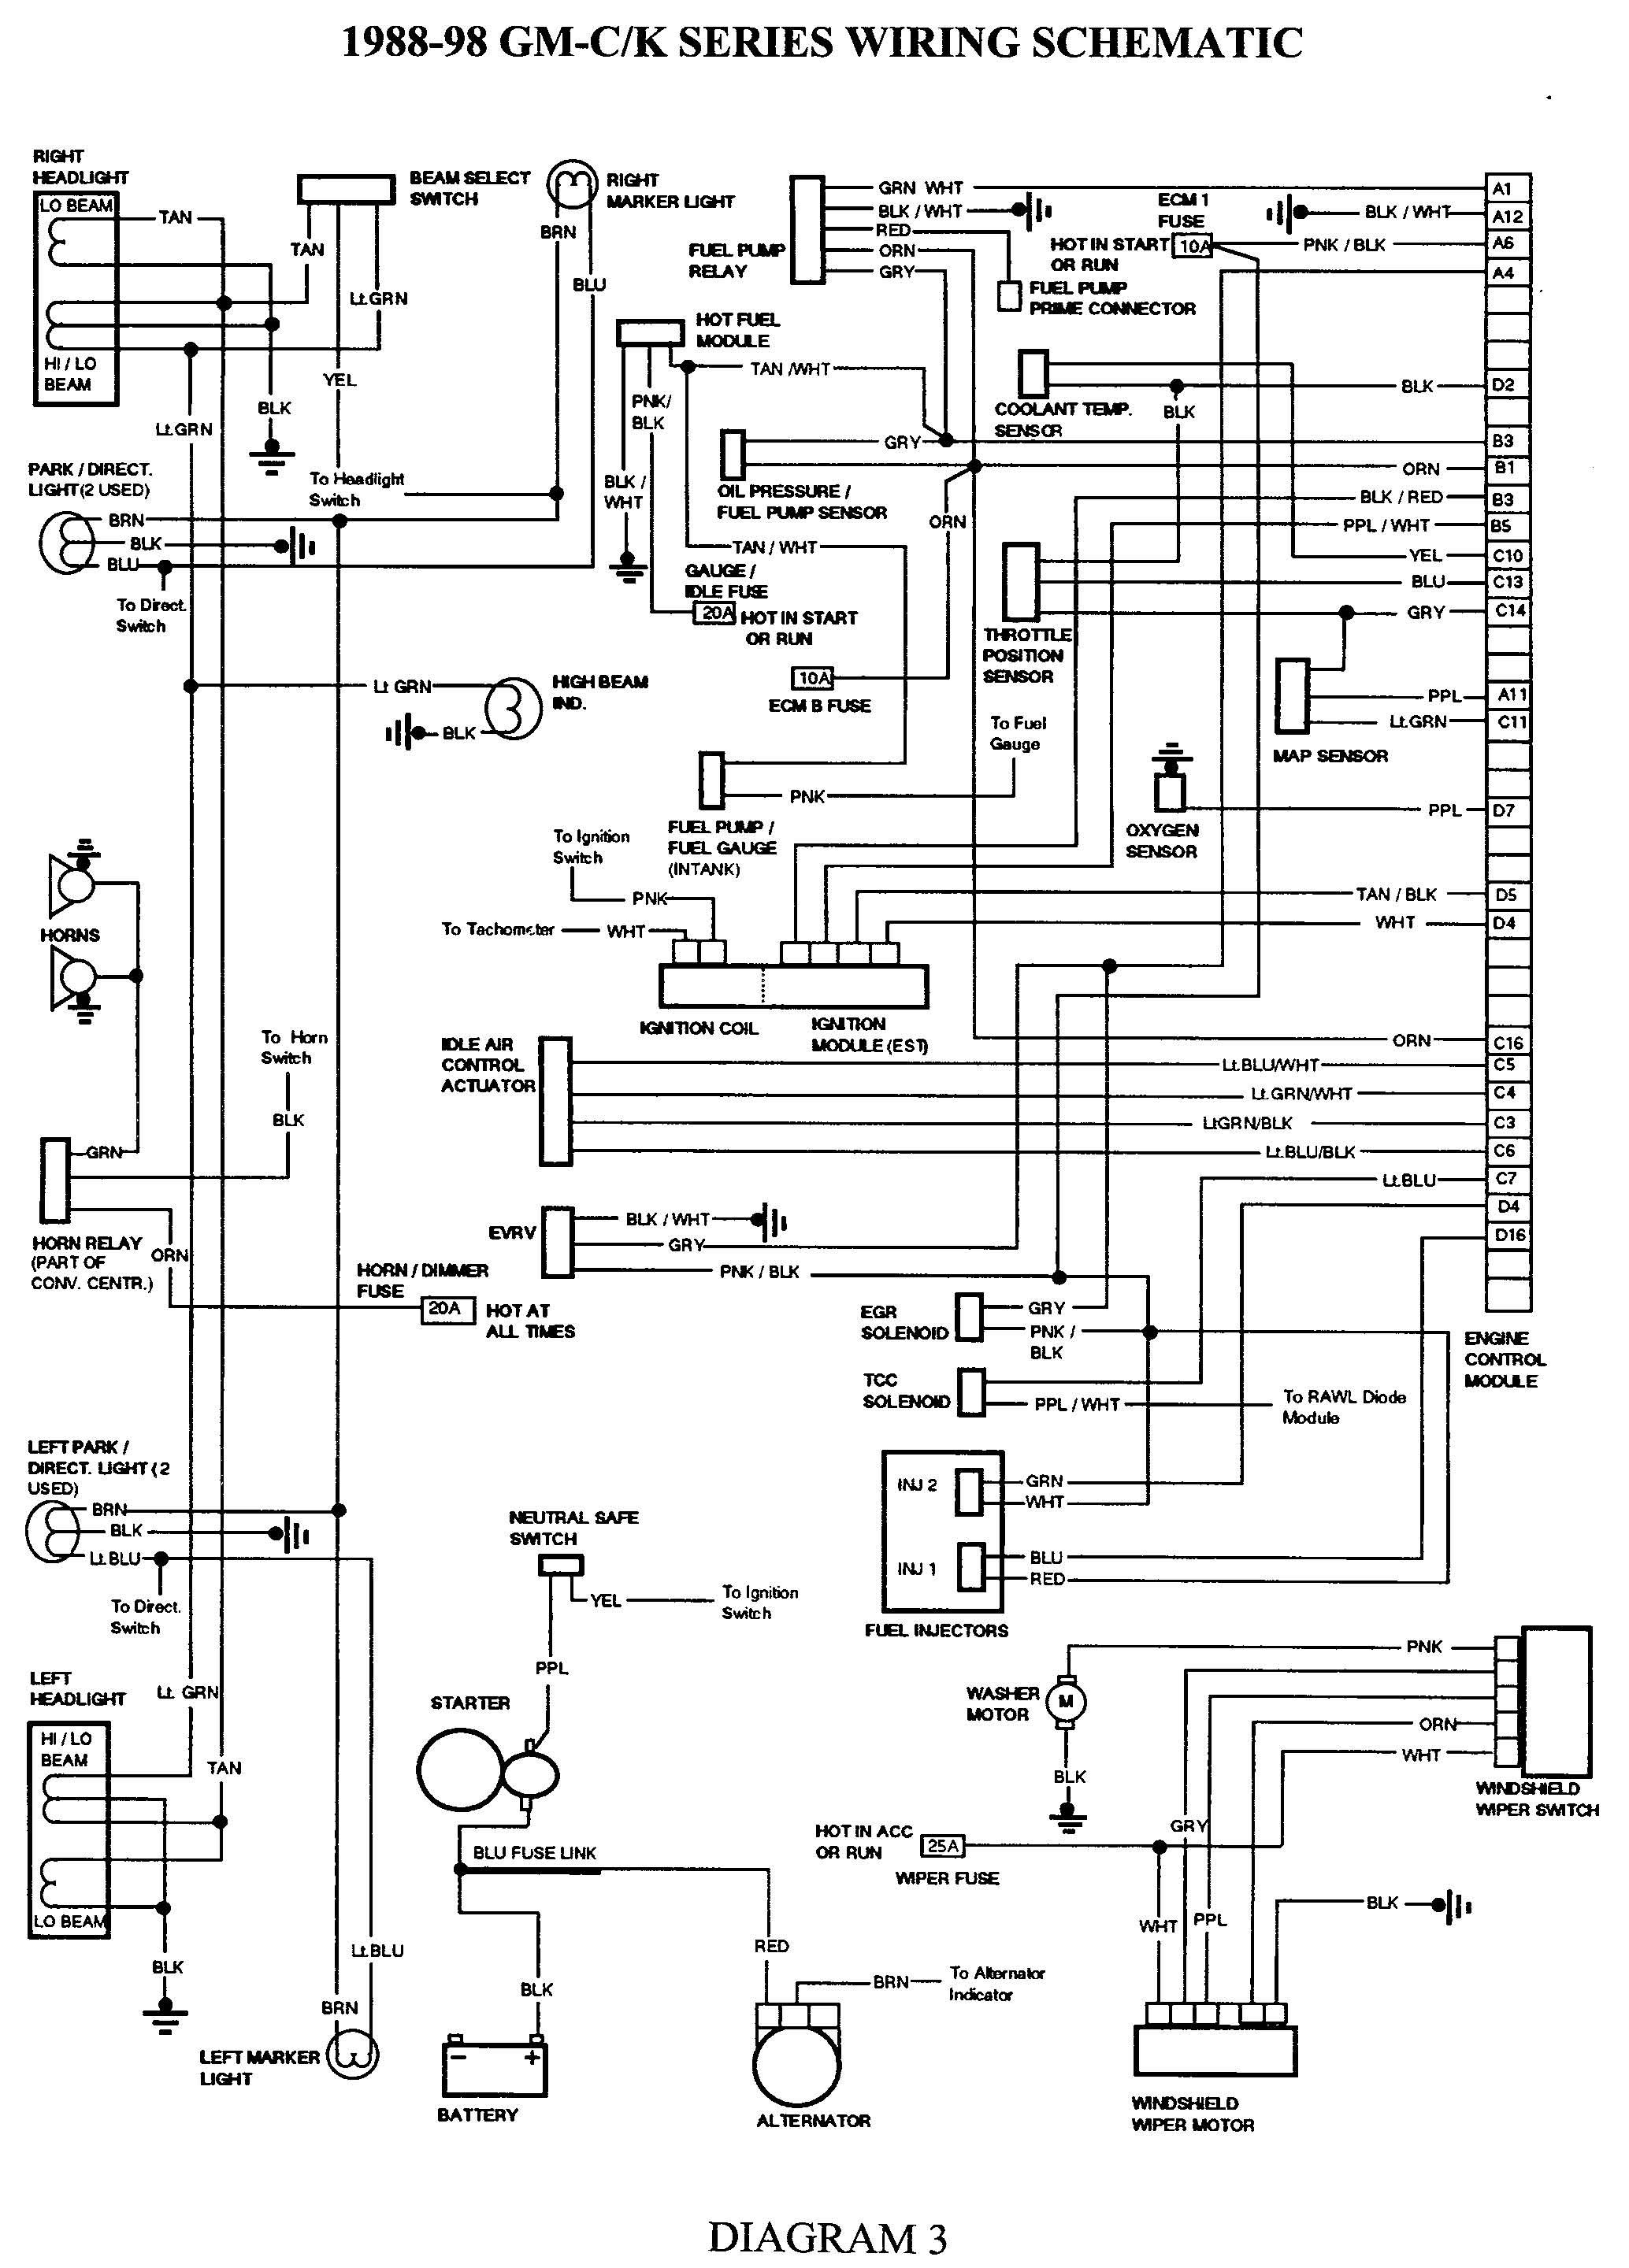 gmc truck wiring diagrams on gm wiring harness diagram 88 98 kc rh pinterest com harness wire diagram harness wire diagram [ 2068 x 2880 Pixel ]